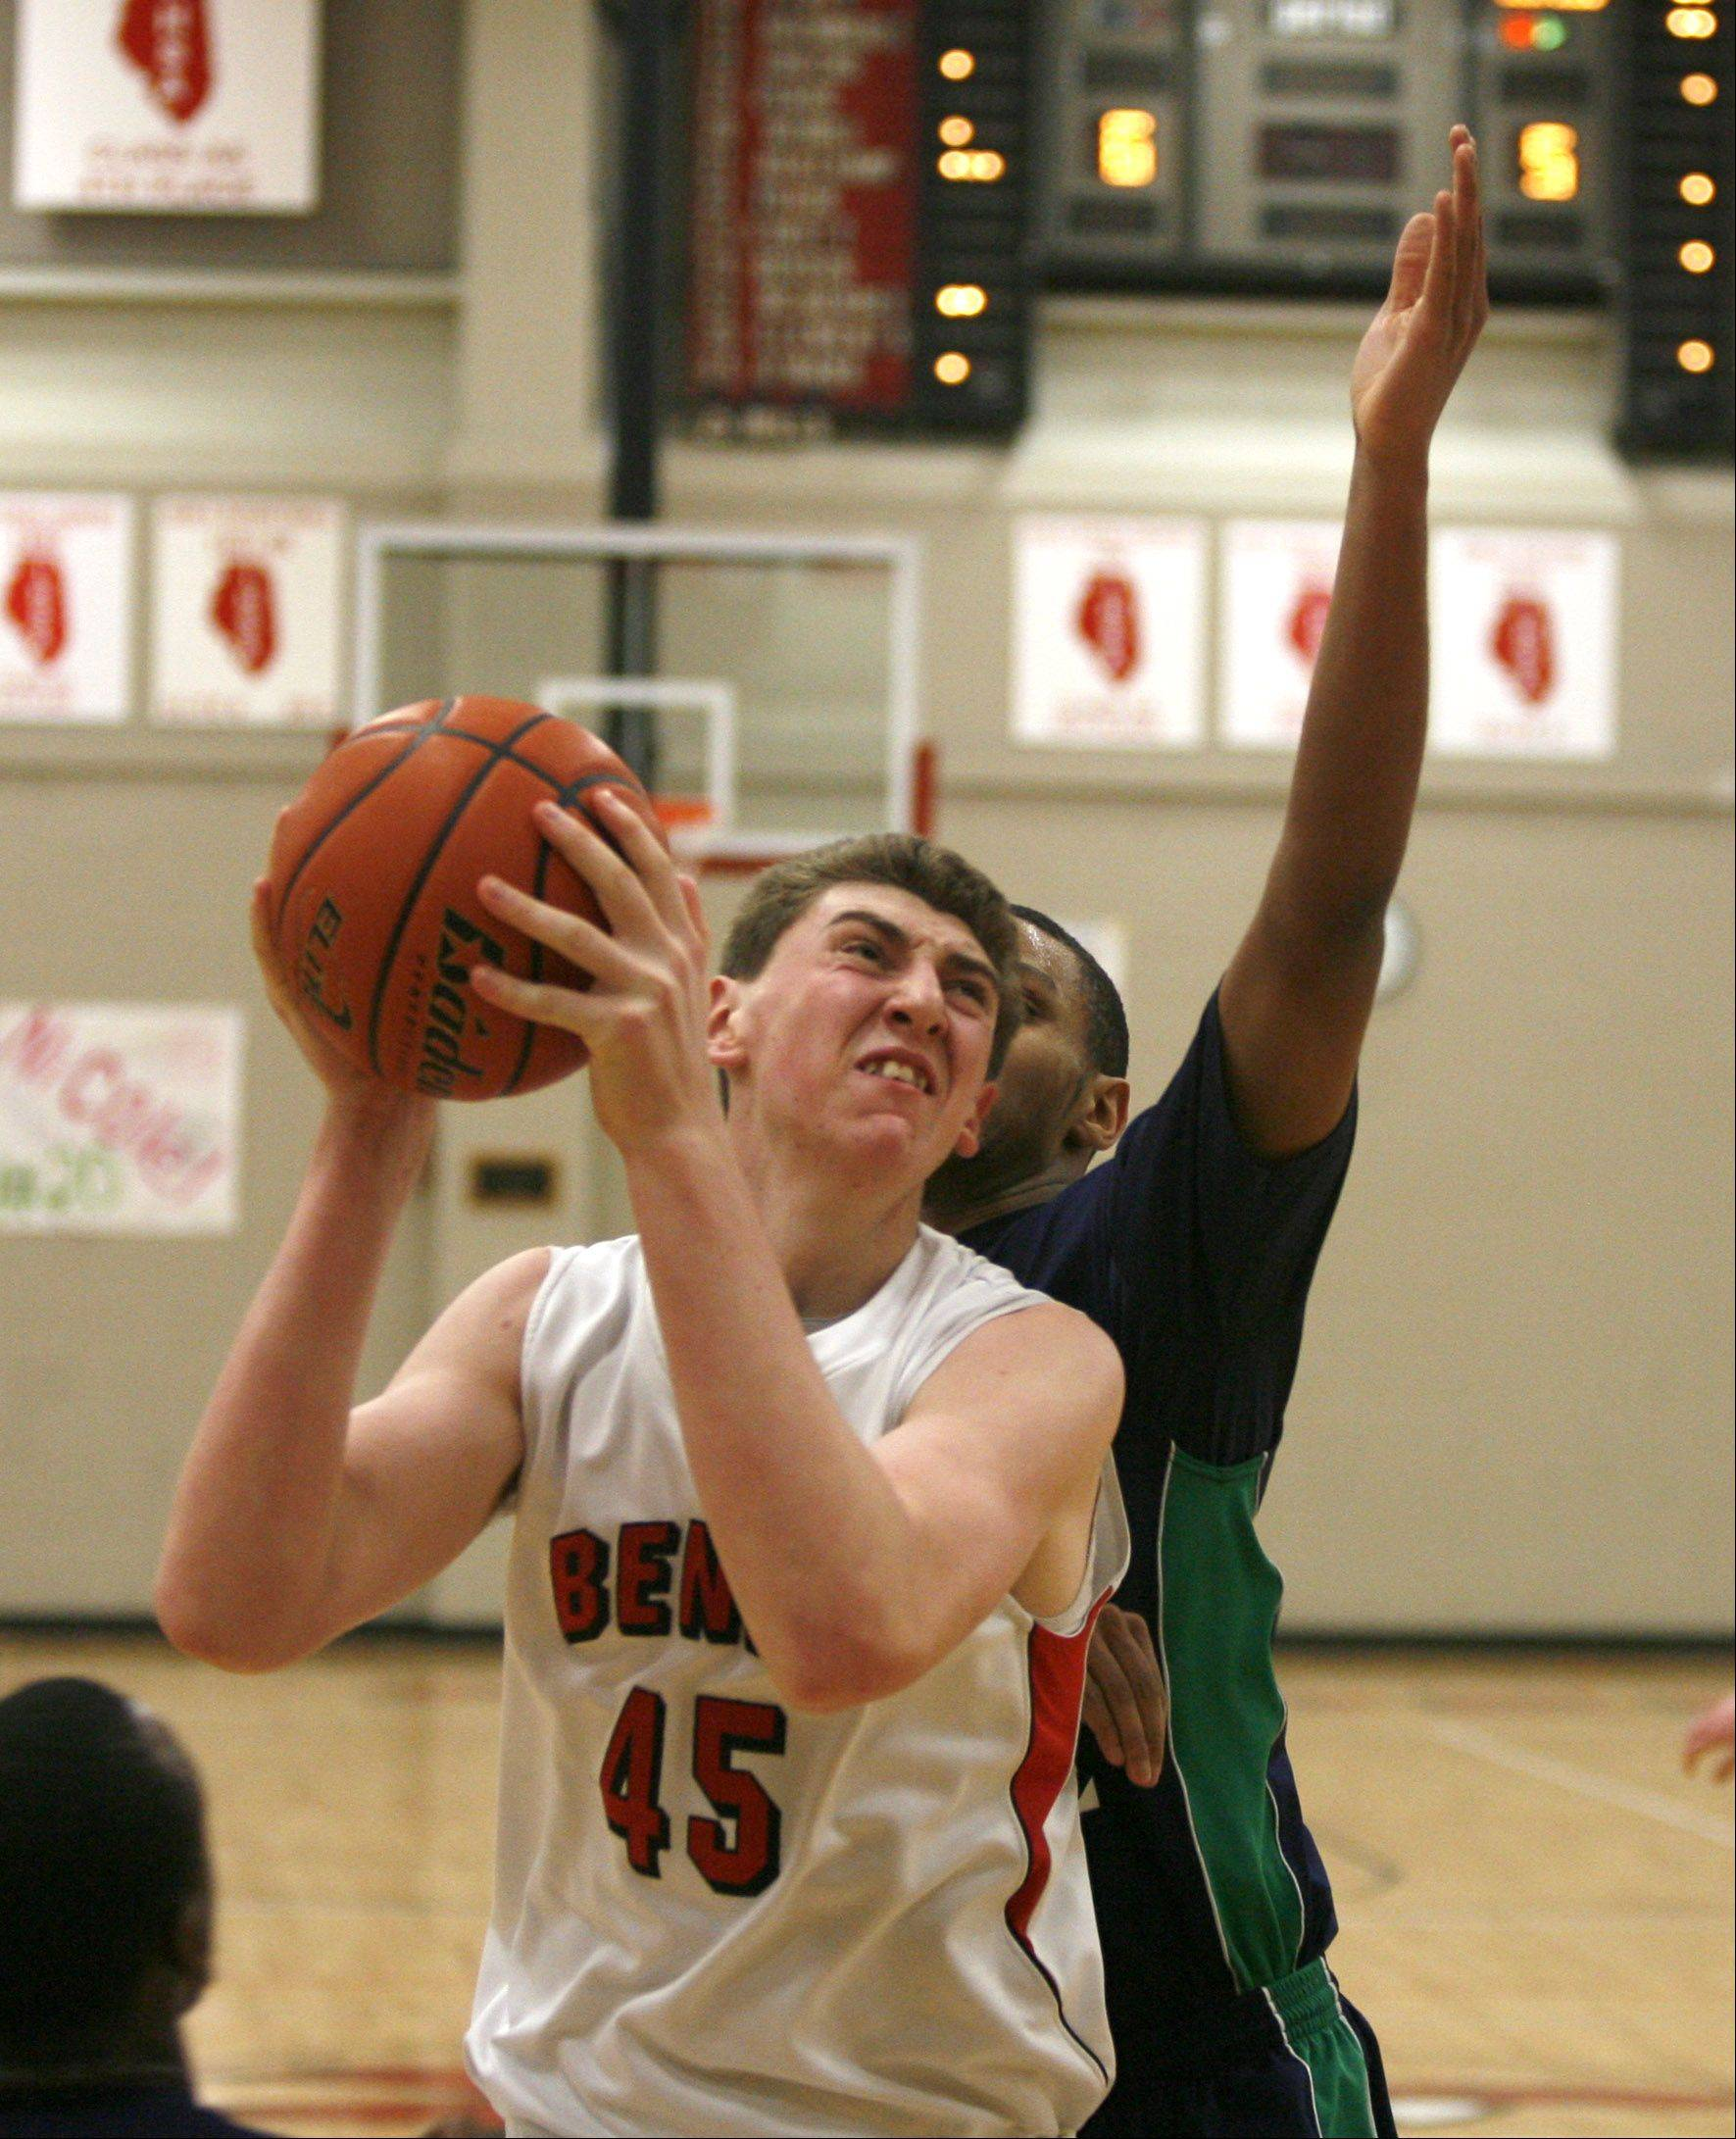 Benet Academy's Sean O'Mara, drives to the basket during boys basketball action against Notre Dame.